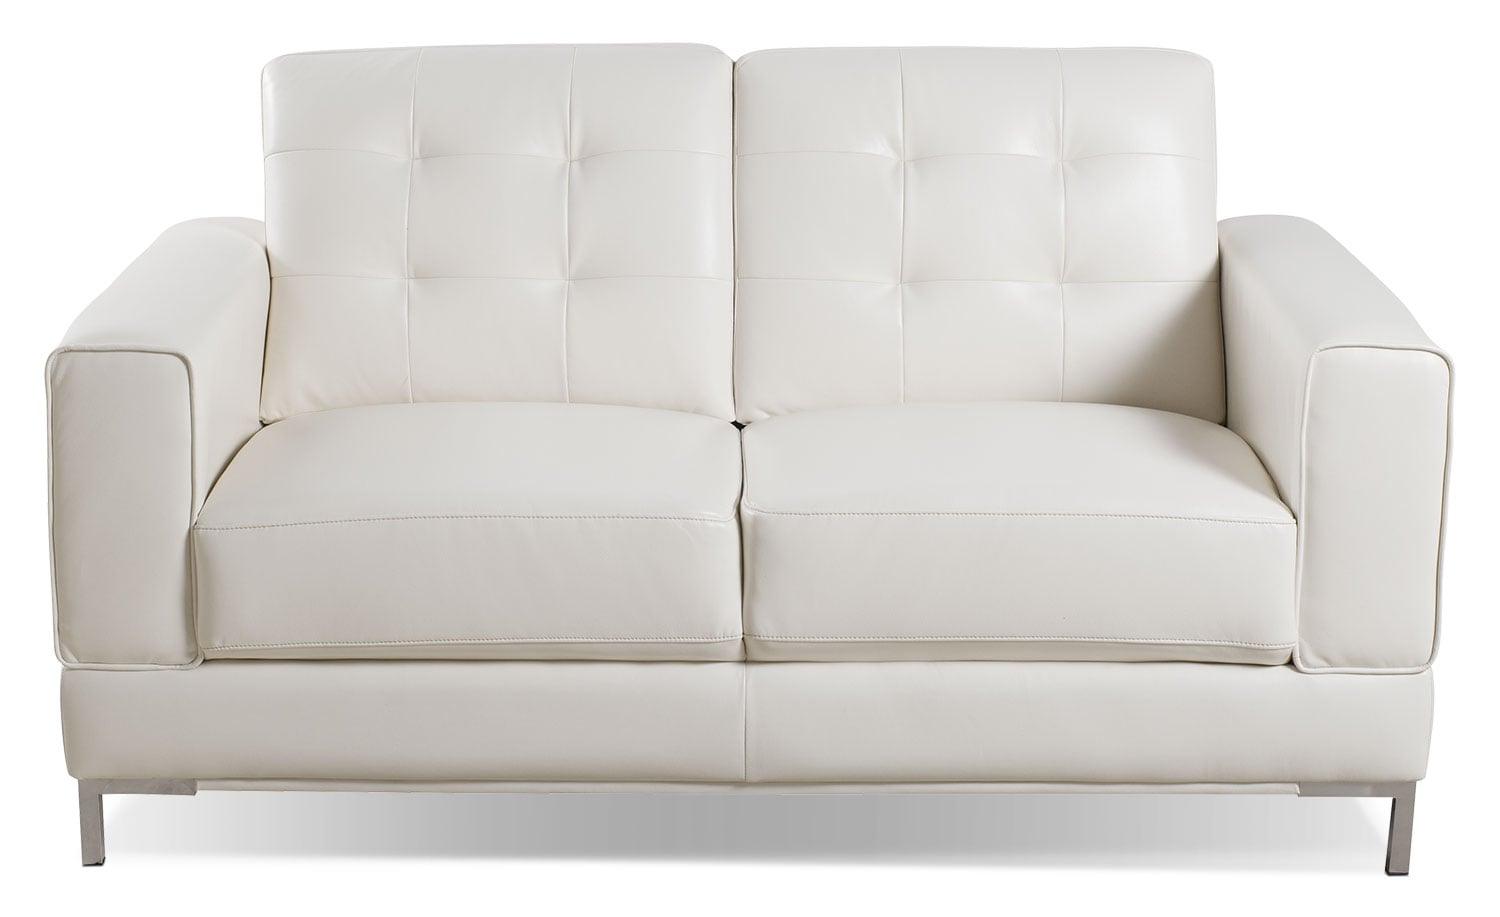 Myer leather look fabric loveseat cream the brick - Living room with cream leather sofa ...